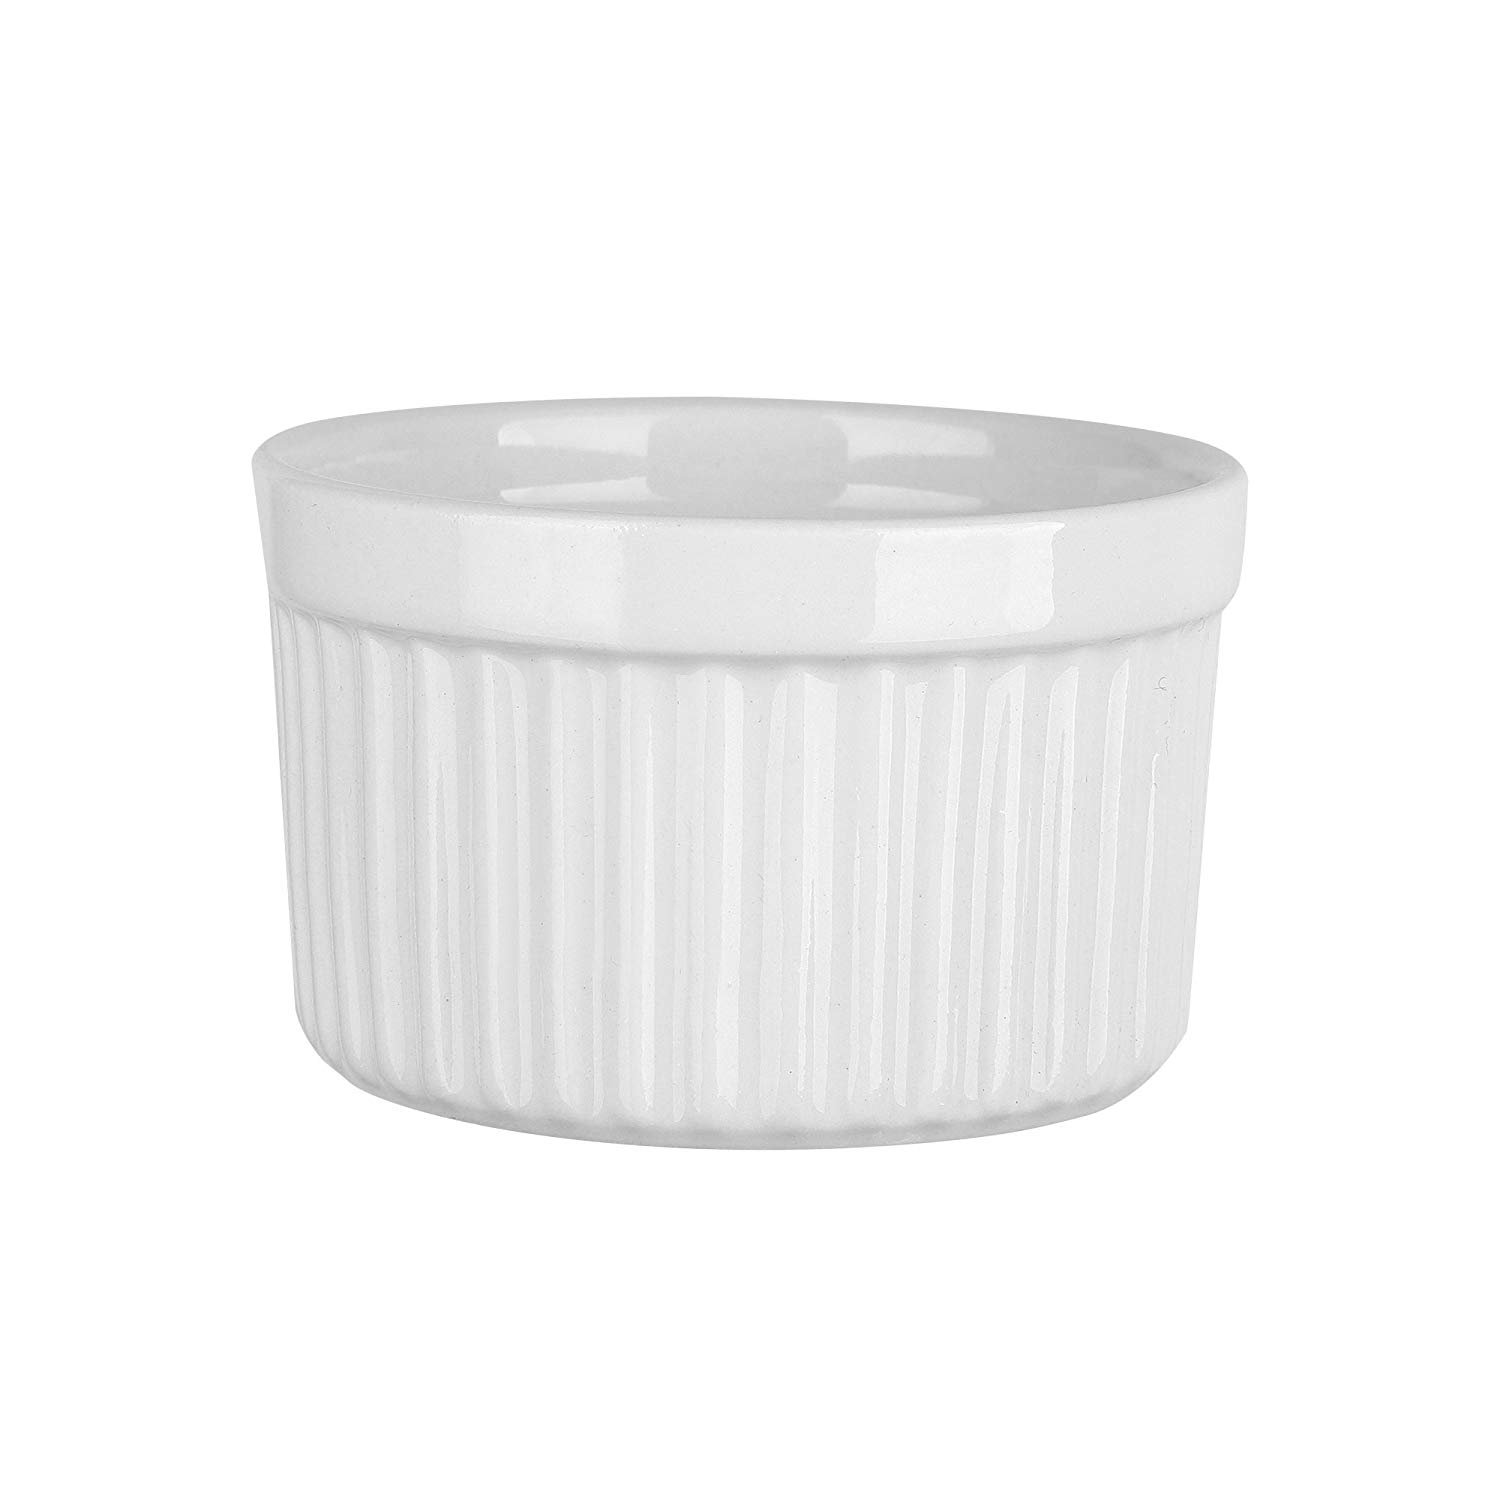 4 oz. Porcelain Ramekins, Porcelain Souffle Dishes, Ramekins for Souffle, Creme Brulee and Dipping Sauces - Set of 8, White by MAMA-AI (Image #3)